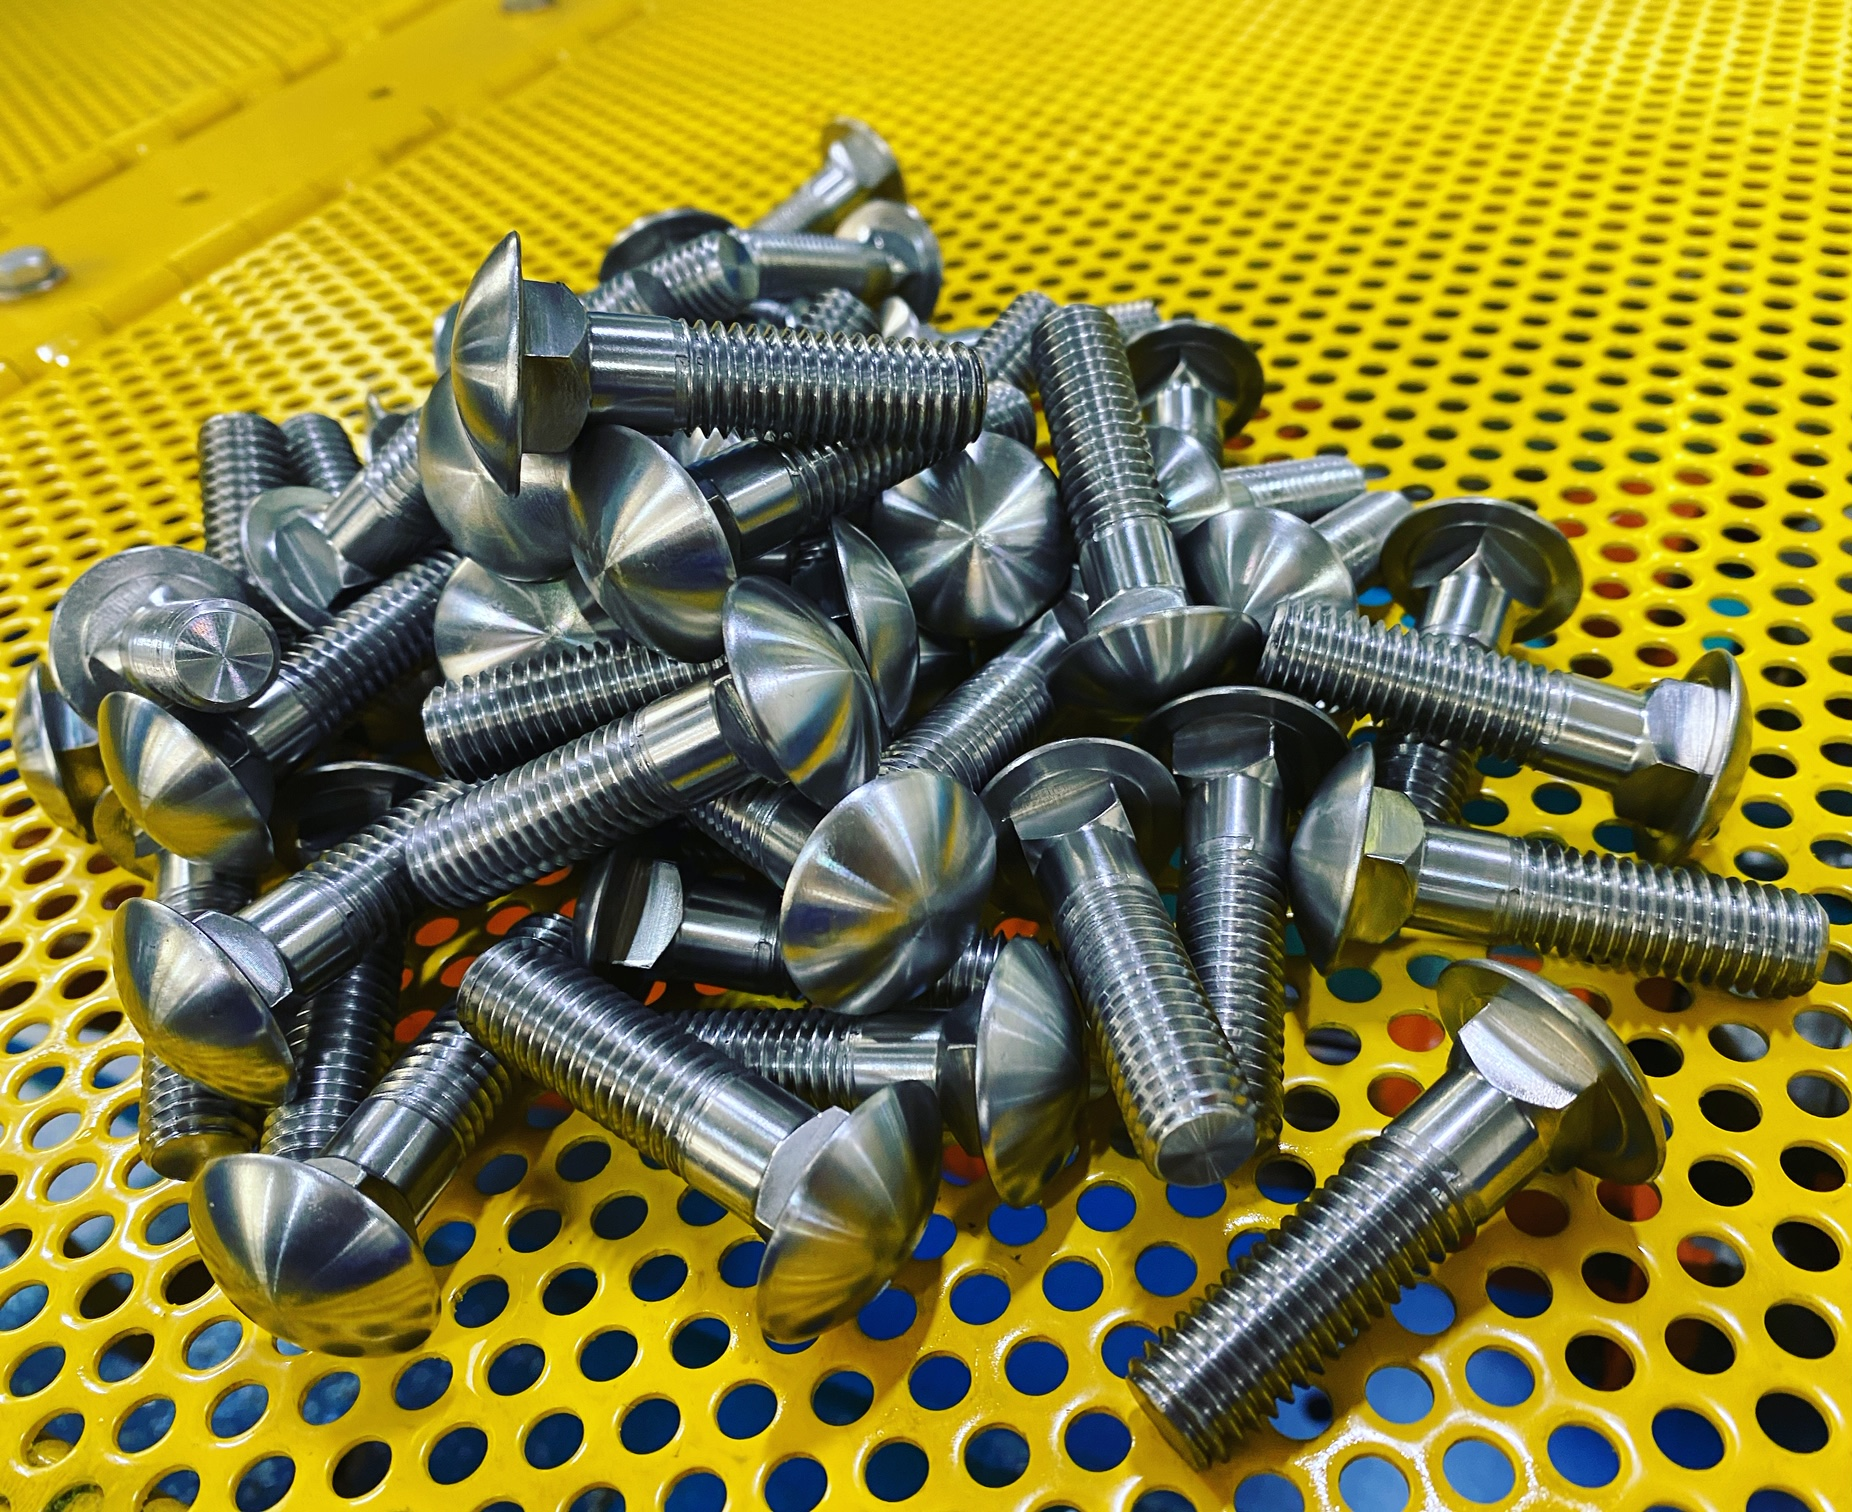 1/2(13) x 3.00 stainless carriage bolt